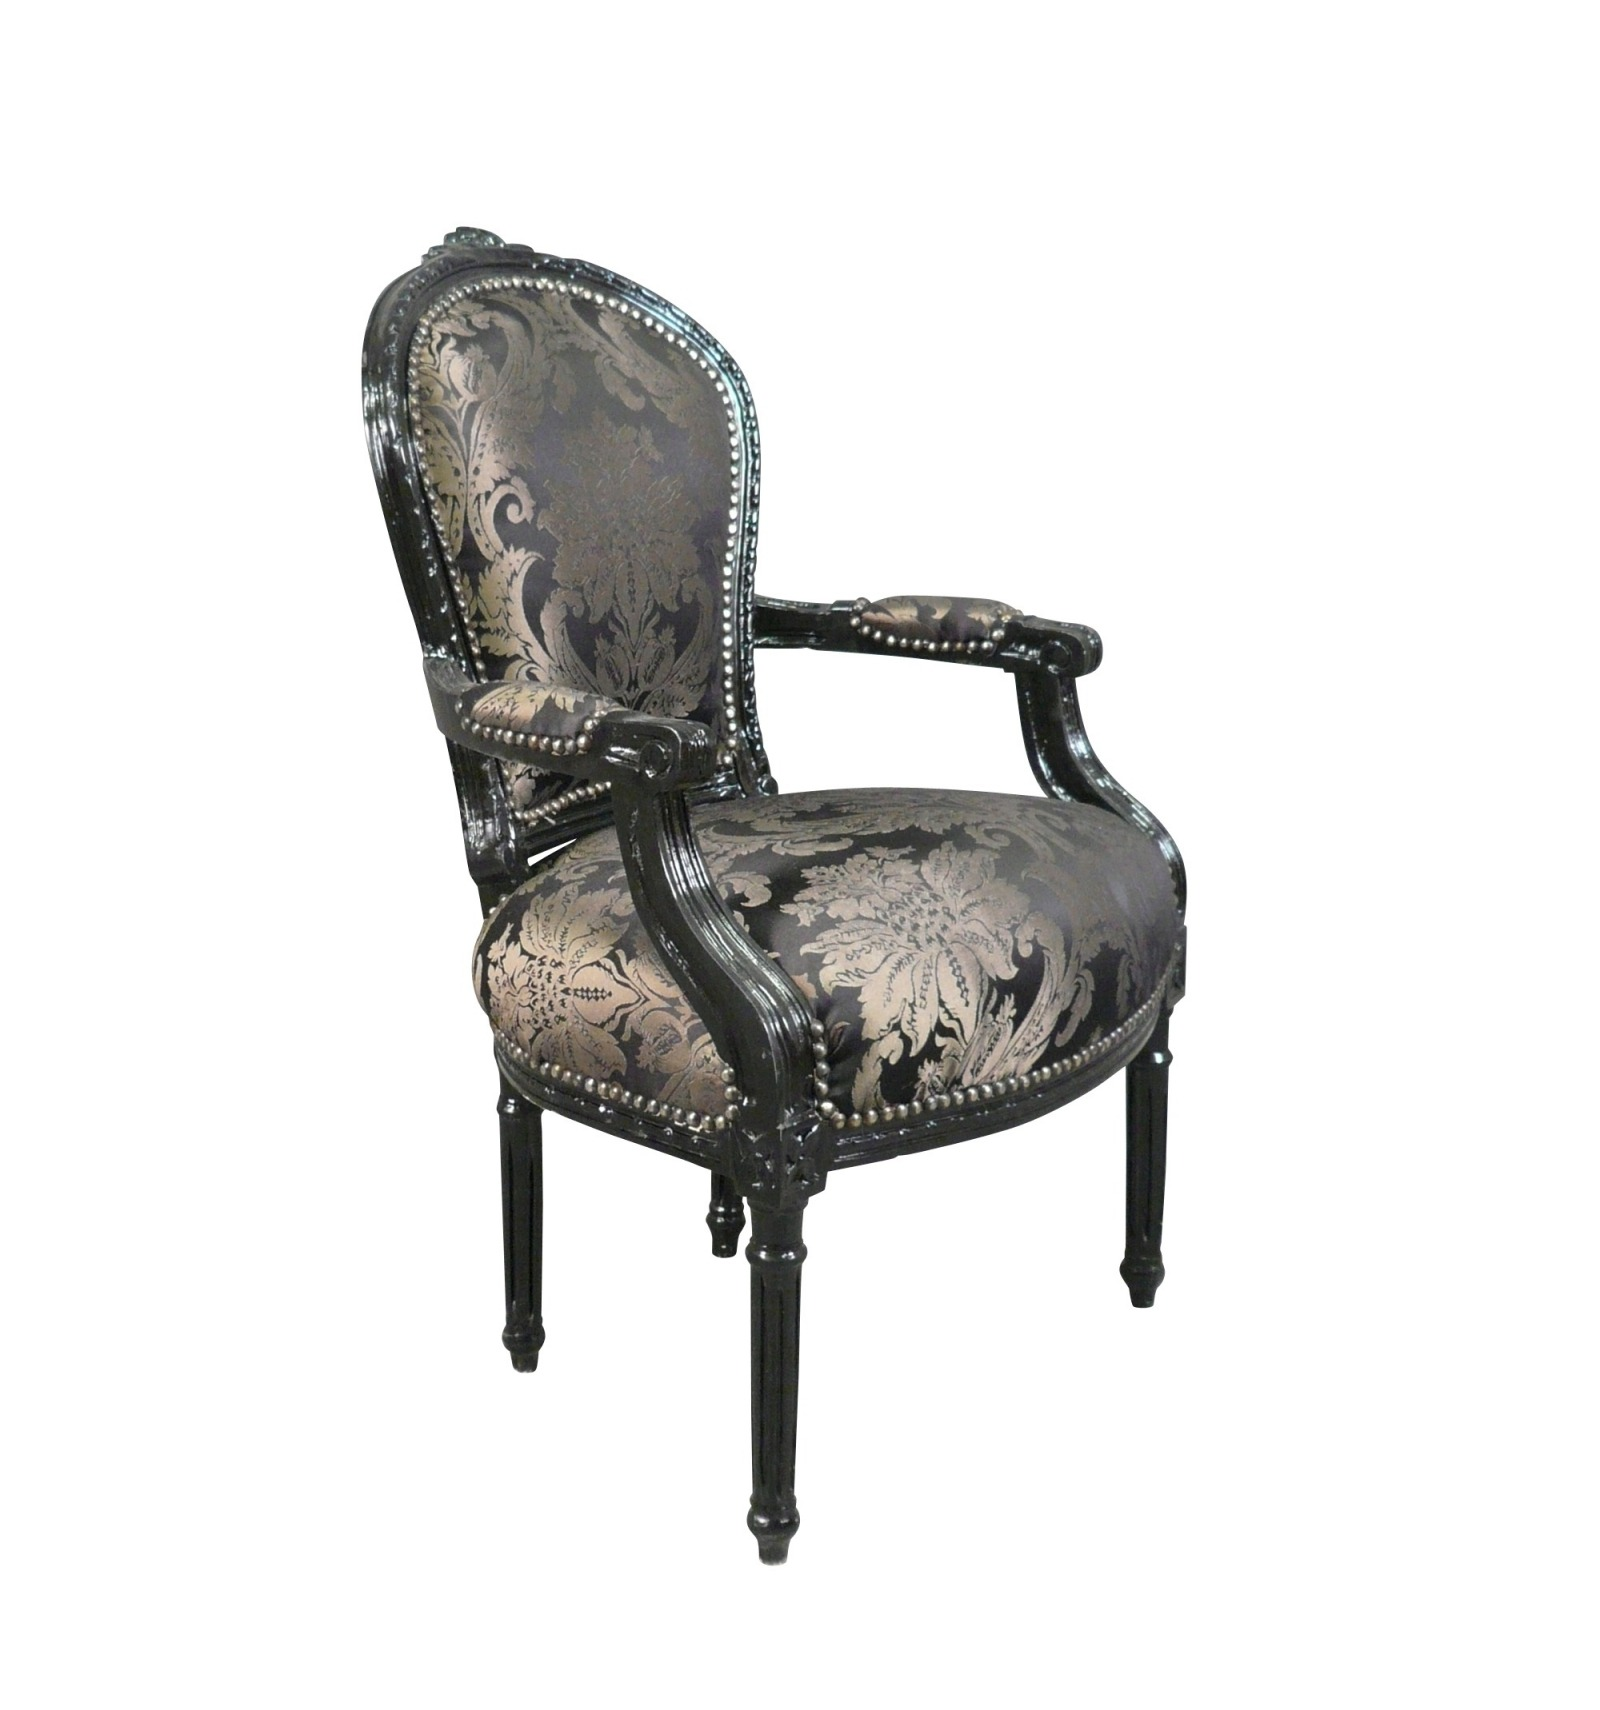 louis xvi chair. Black Bedroom Furniture Sets. Home Design Ideas